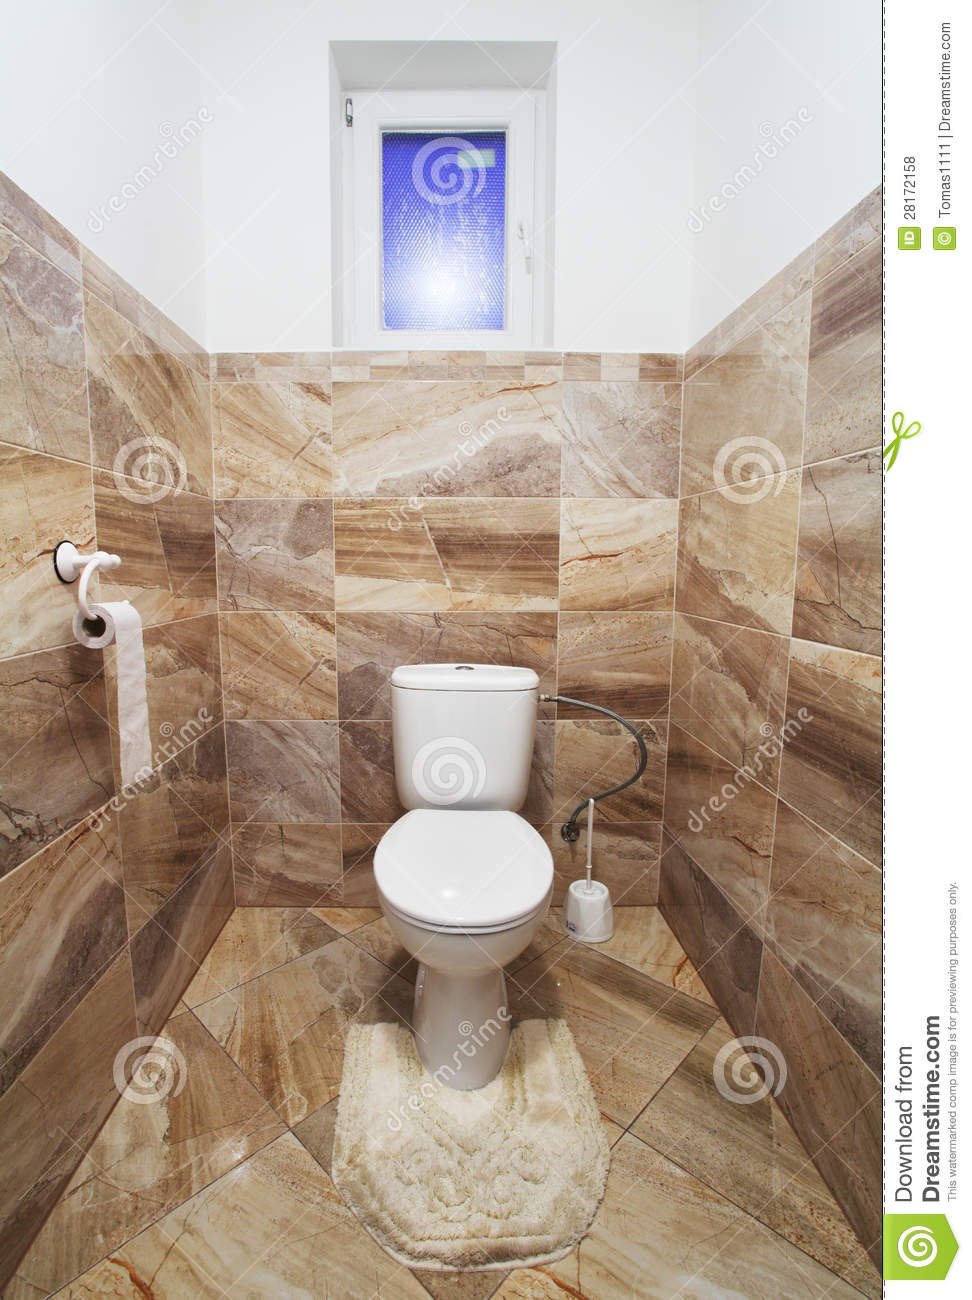 Toilette de luxe photo stock image du lumineux bain for Toilette seche interieur maison